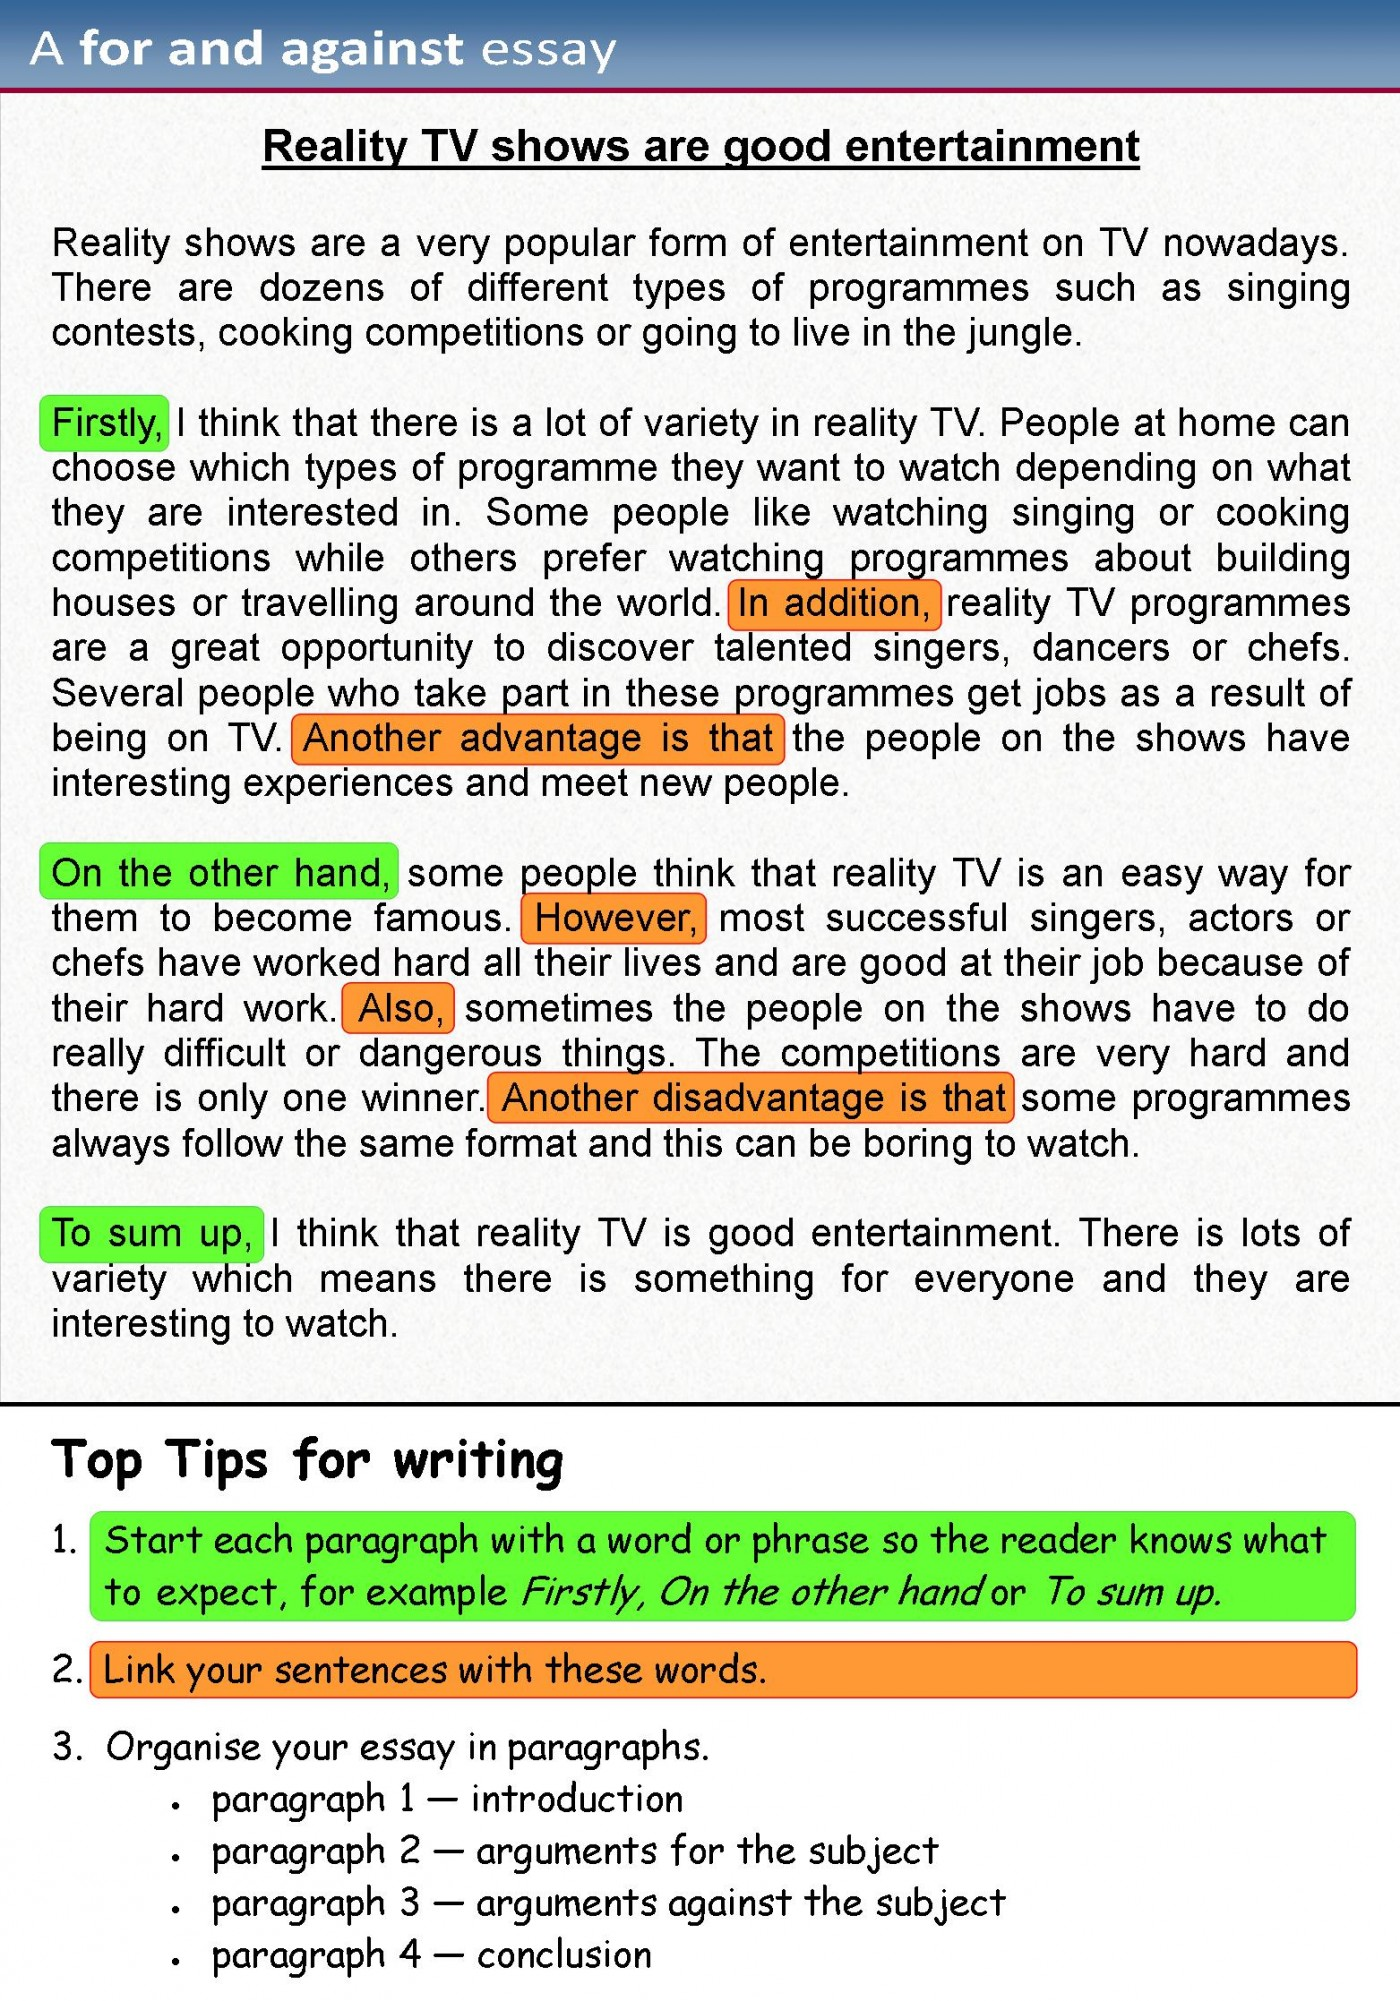 016 For Against Essay 1 Funny Essays Stupendous Topics Written By Students College 1400